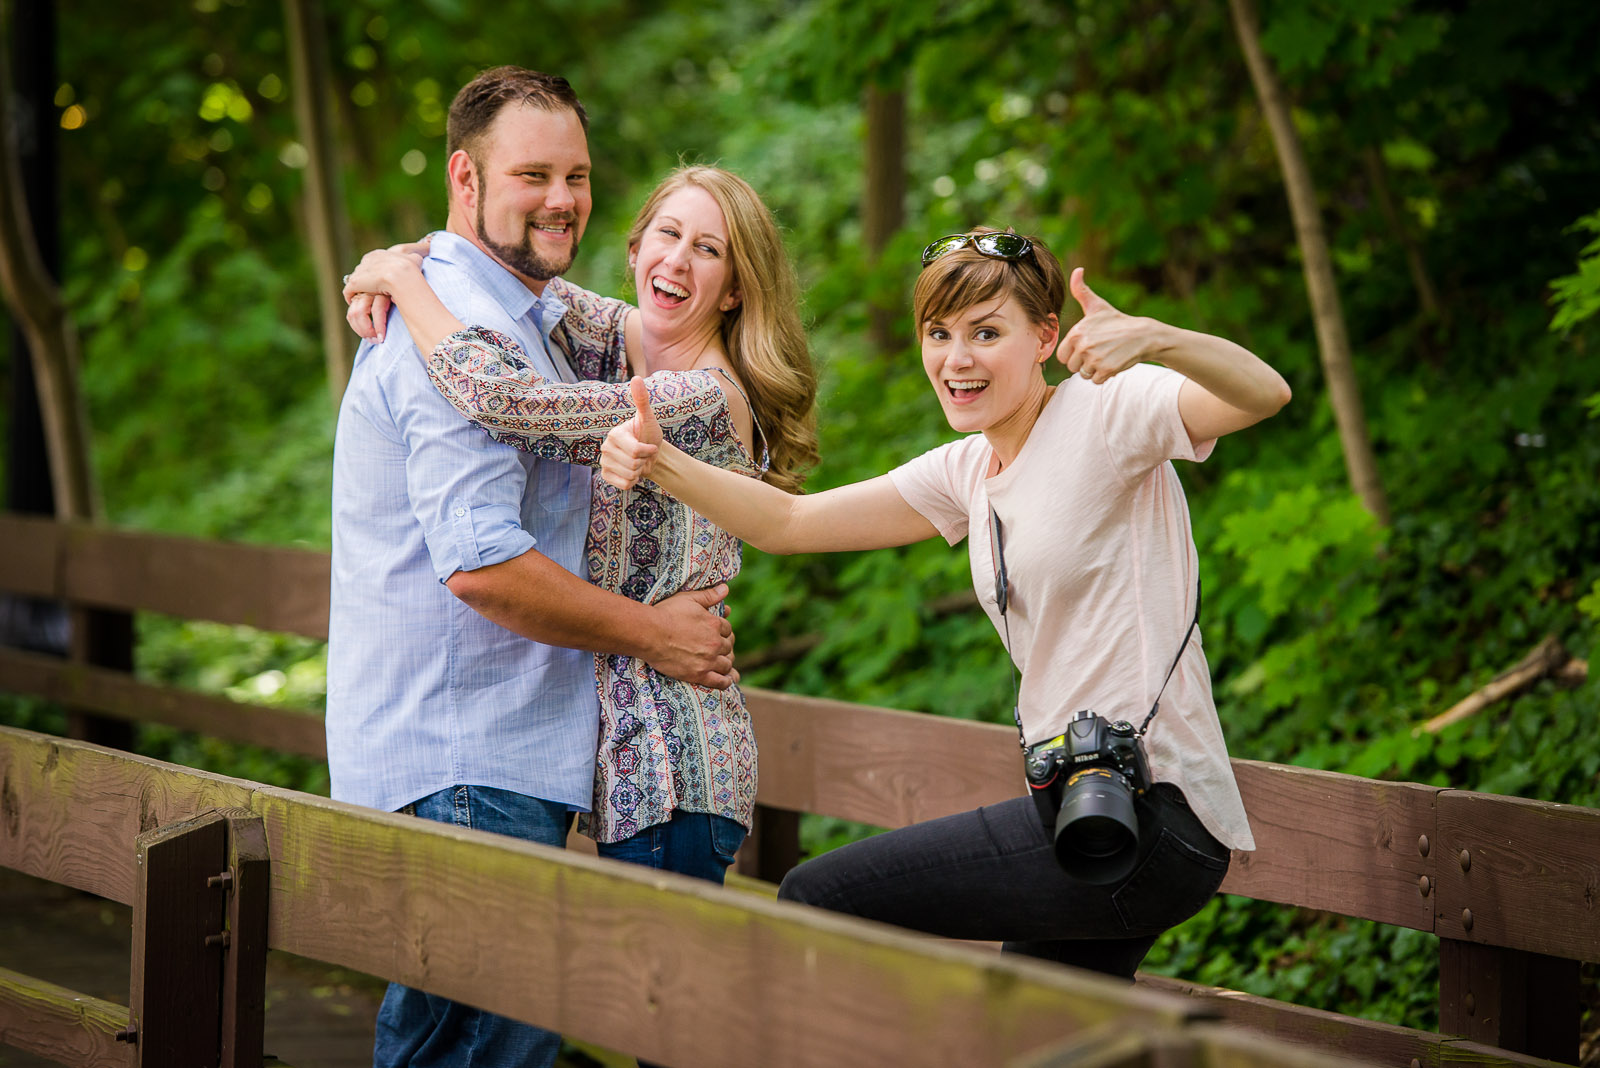 Eric_and_Christy_Photography_Blog_2017_Best_Engagement-29